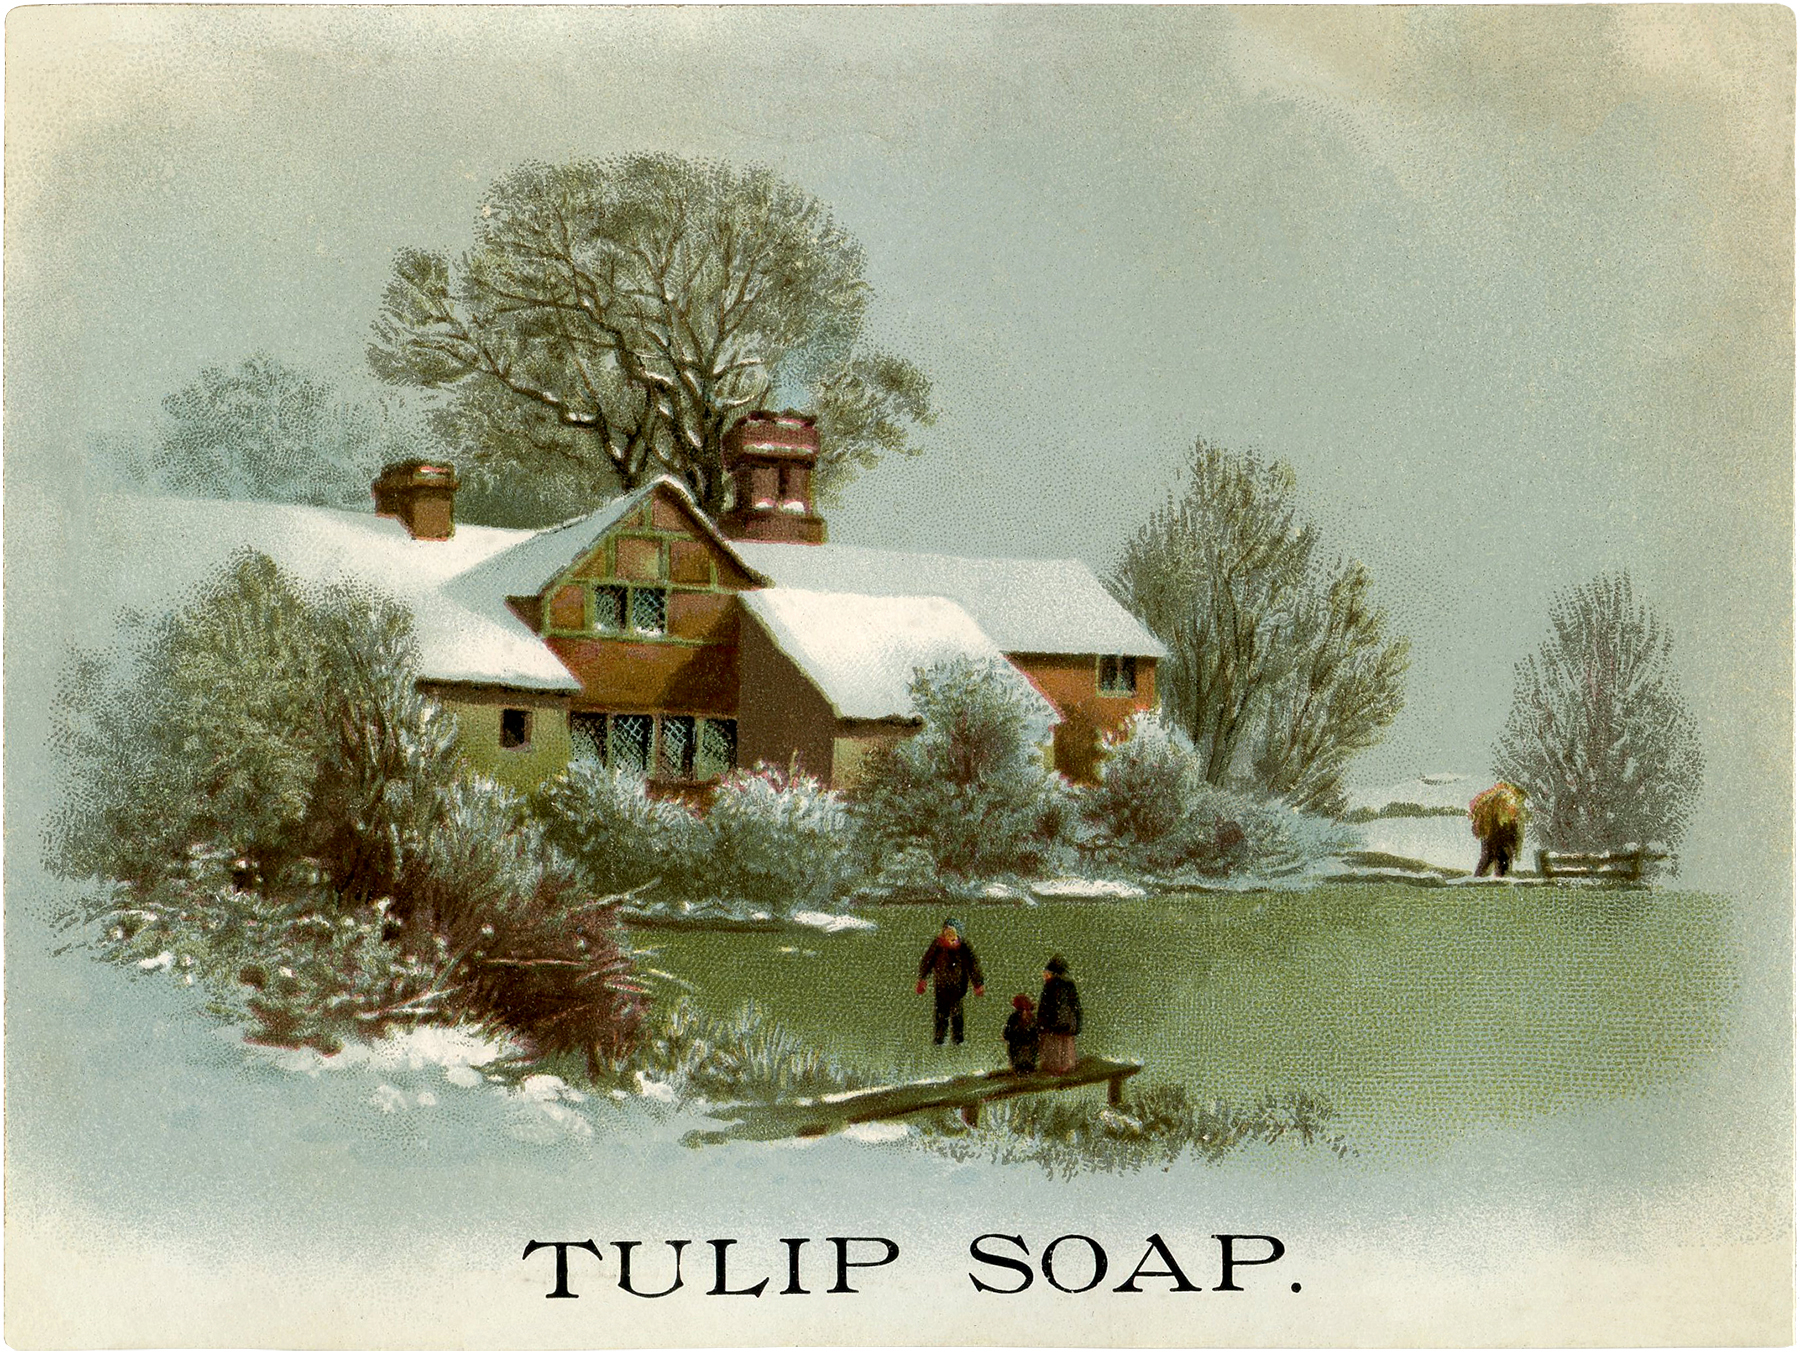 Vintage Winter Tudor Cottage Image